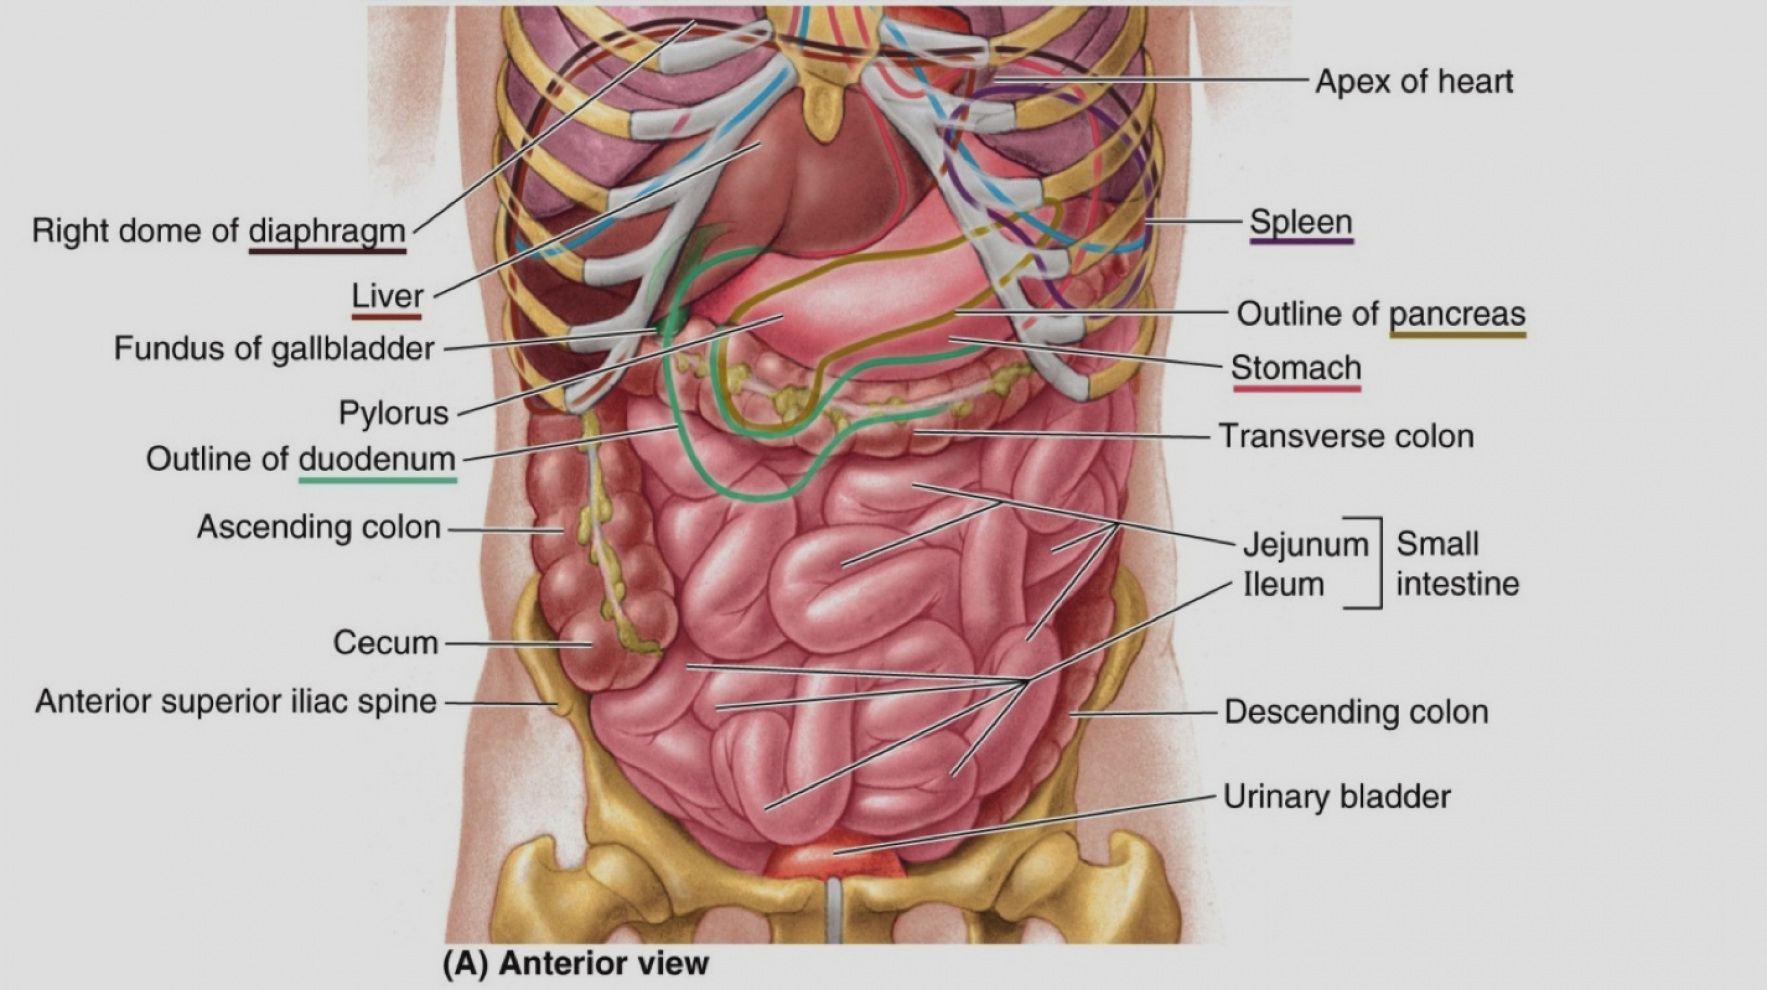 Major Organs In The Abdominal Cavity Elegant Of Human Abdominal